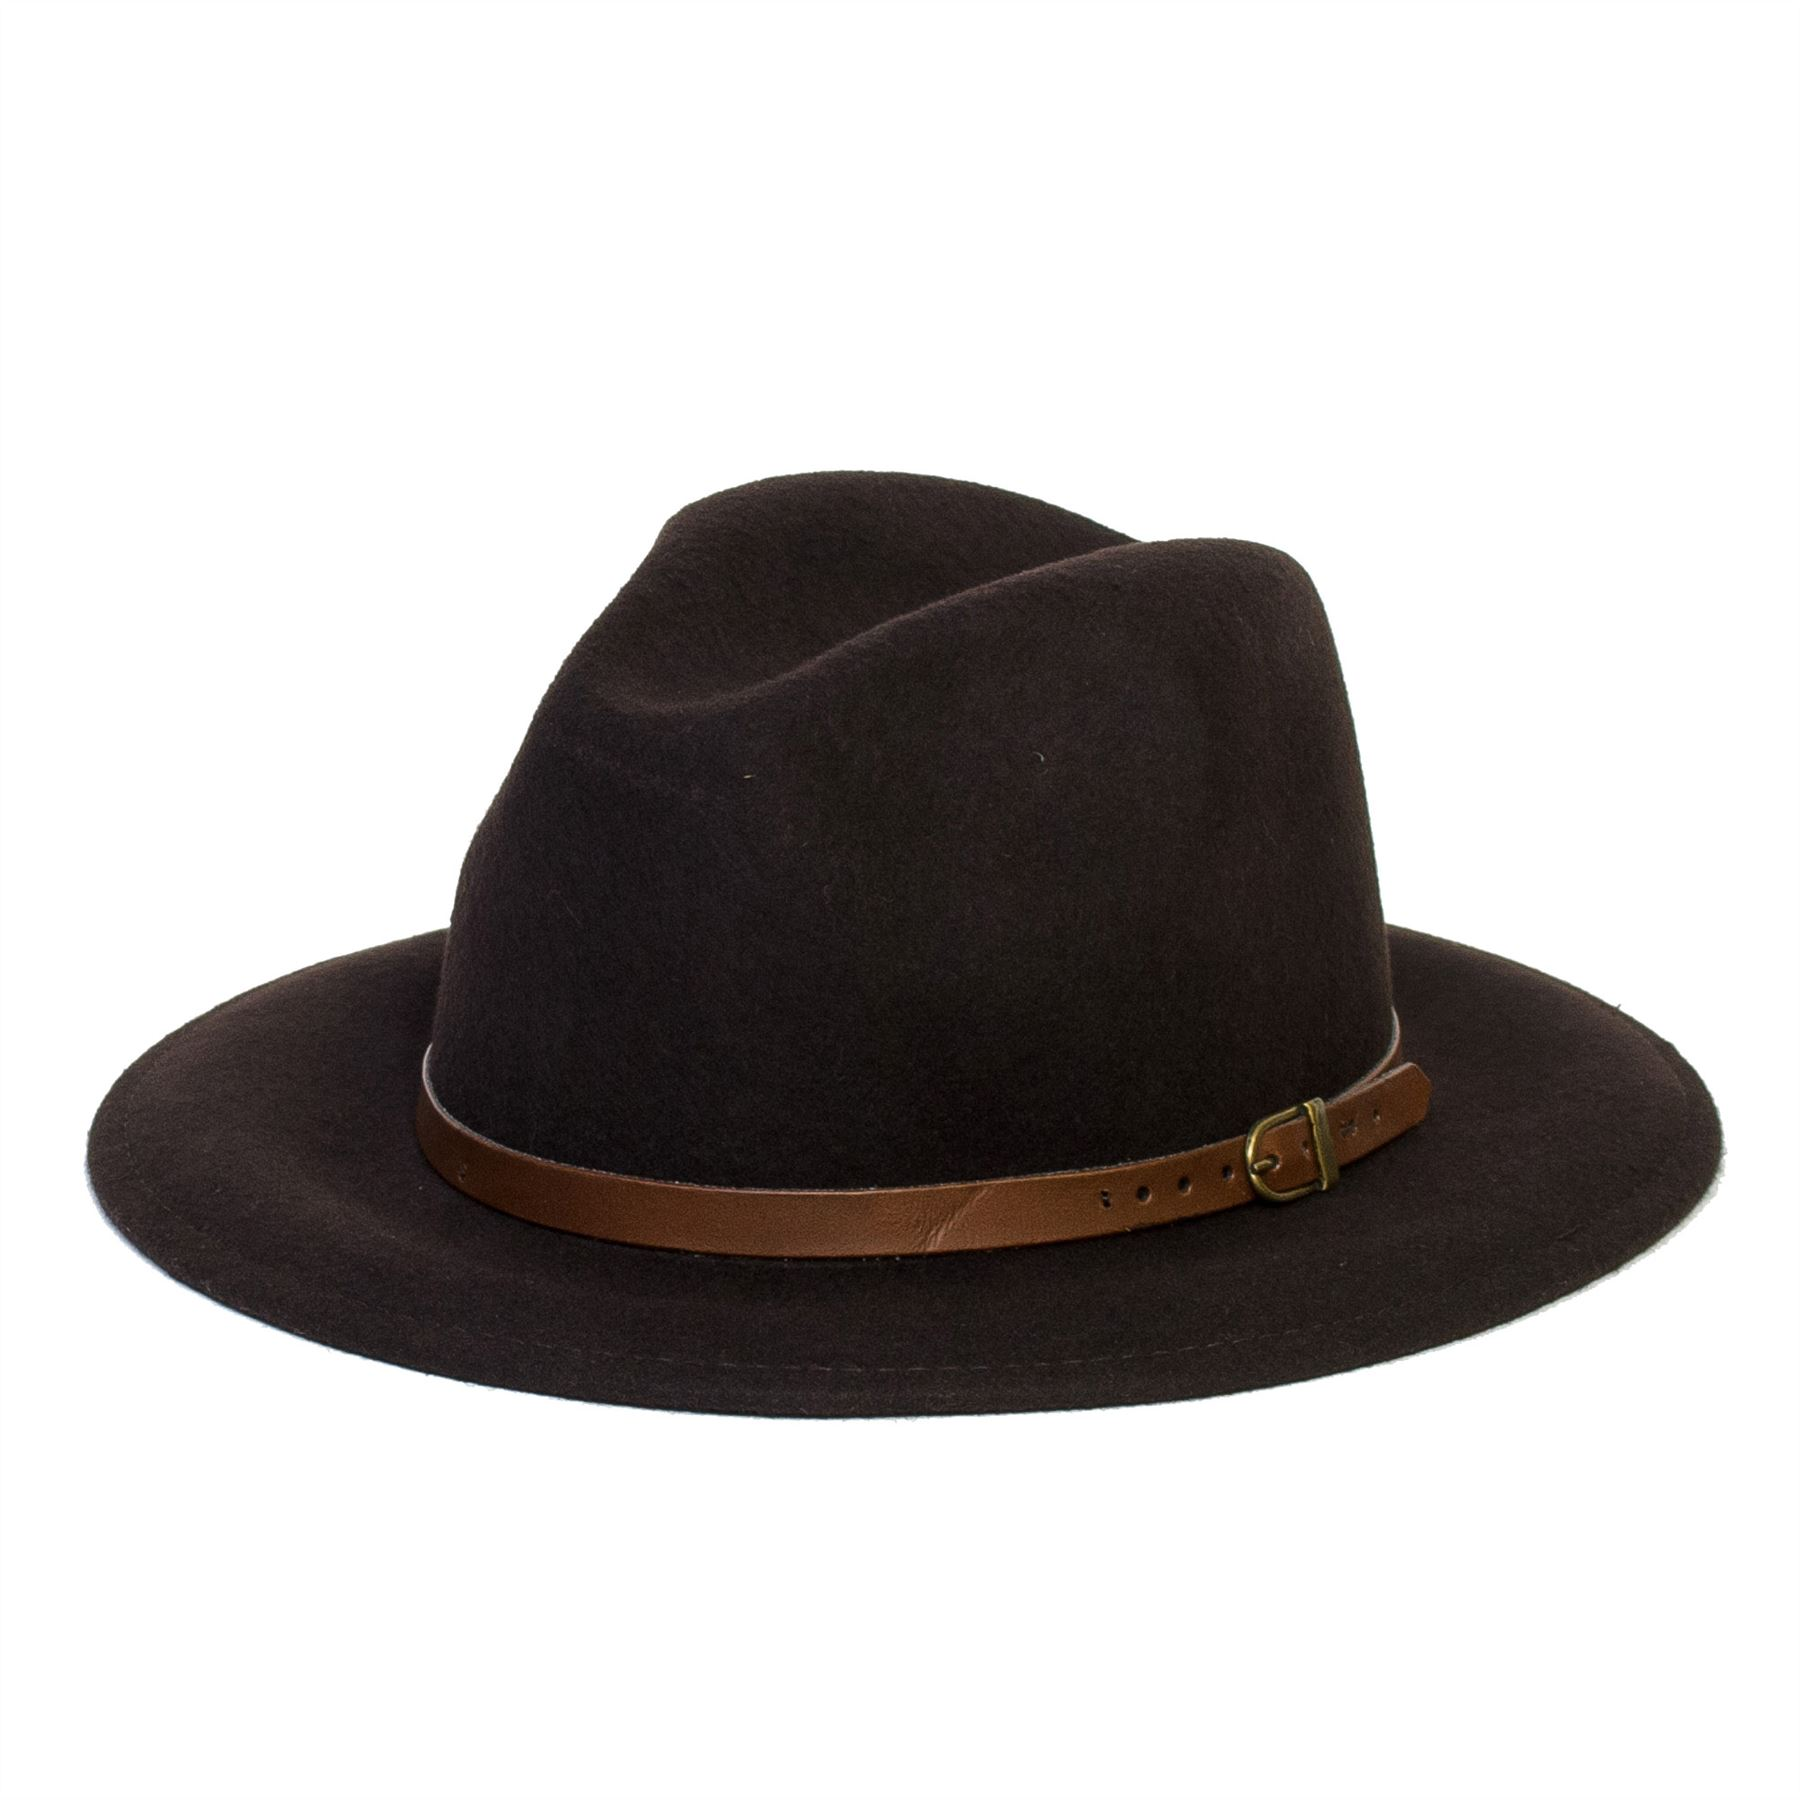 Free shipping on fedora hats for men at neidagrosk0dwju.ga Shop the latest fedoras from the best brands. Totally free shipping and returns.